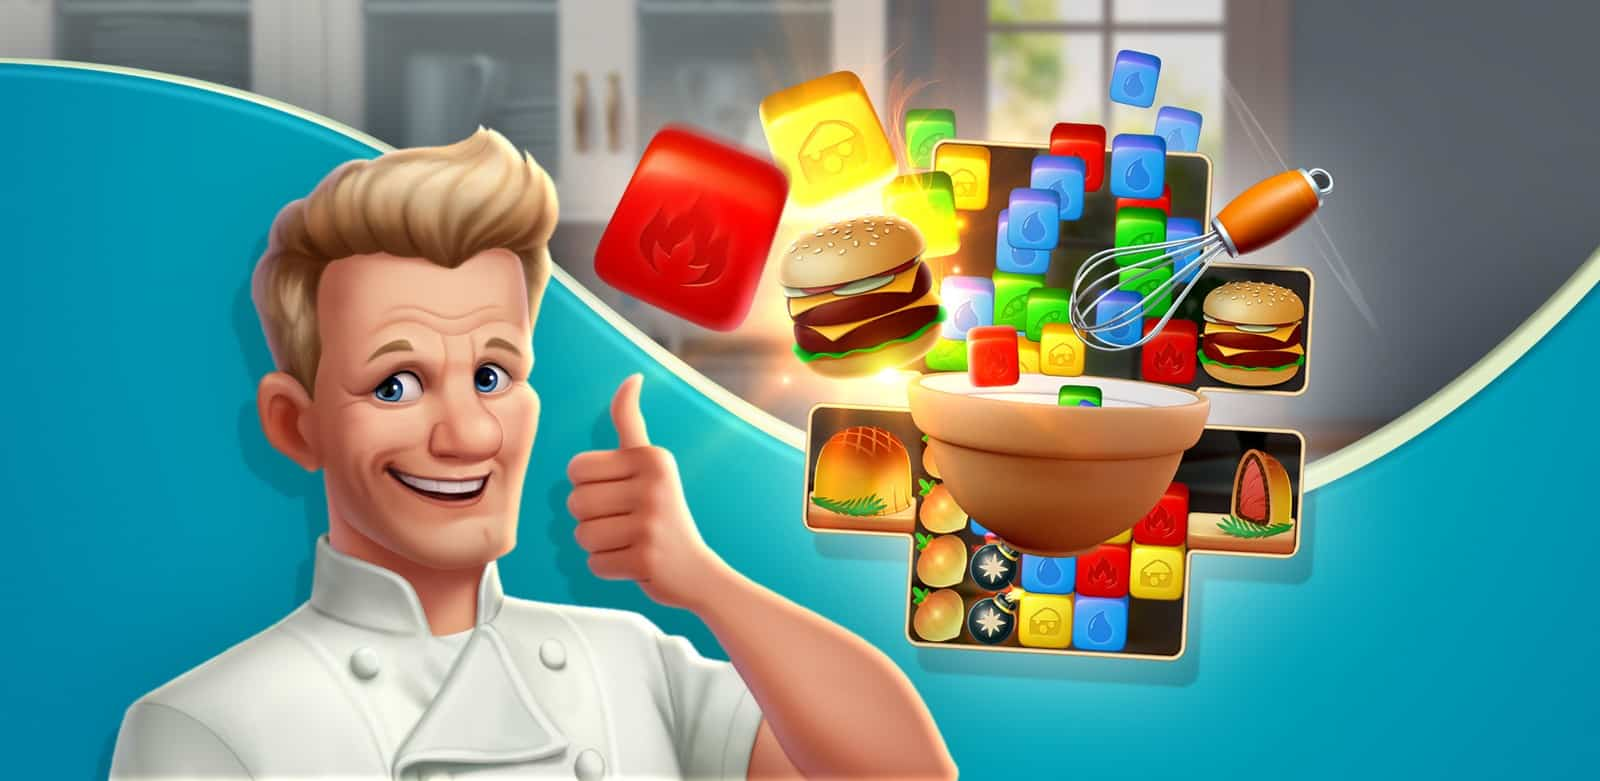 Gordon Ramsay's Chef Blast App Review [for Android & IOS]